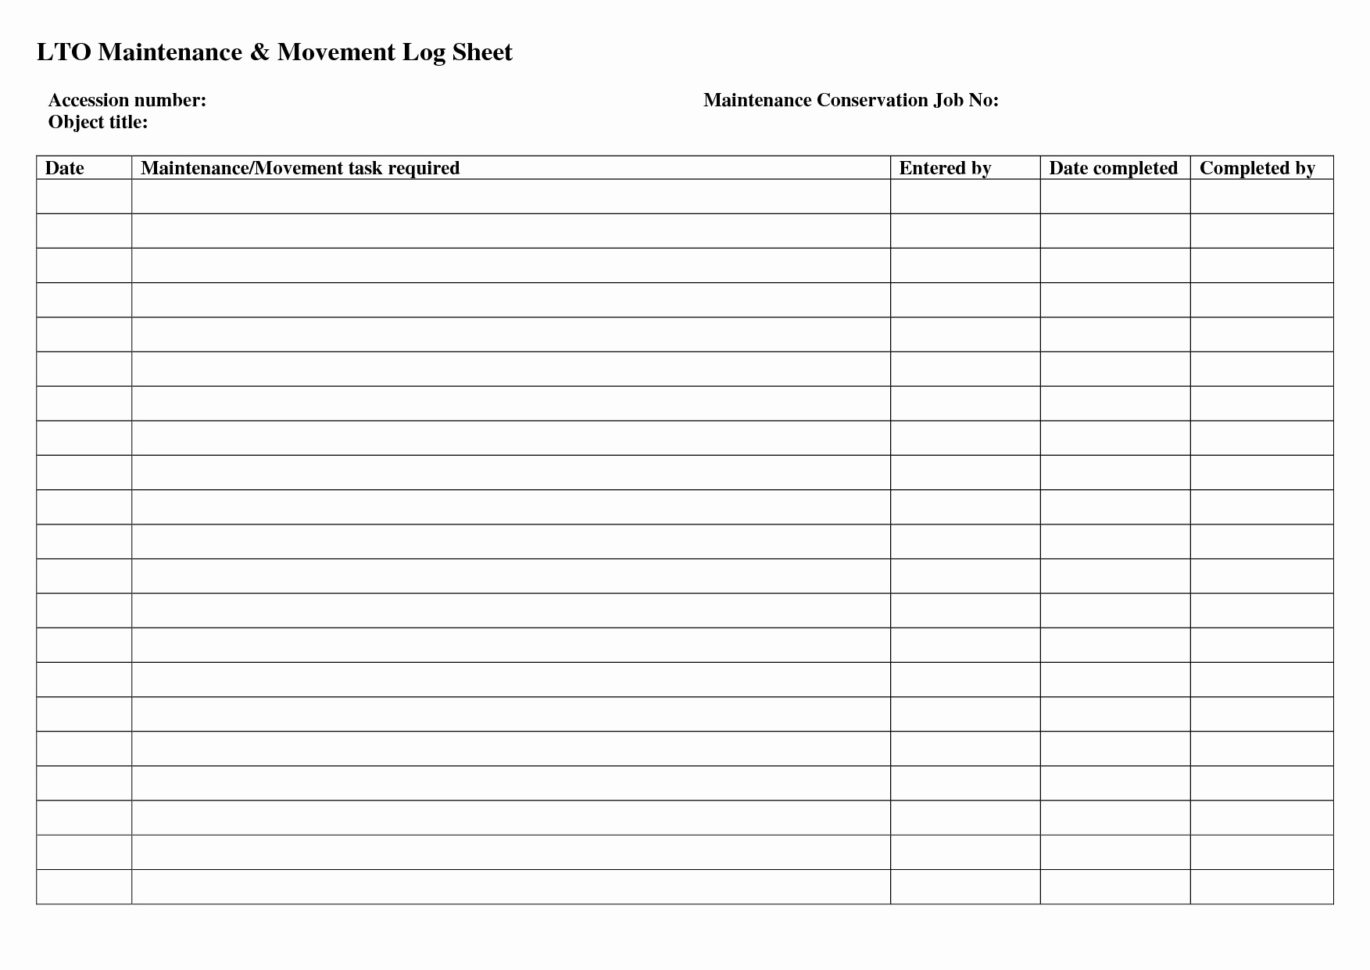 Maintenance Log Spreadsheet Within Auto Maintenance Schedule Spreadsheet Car Download Vehicle Template